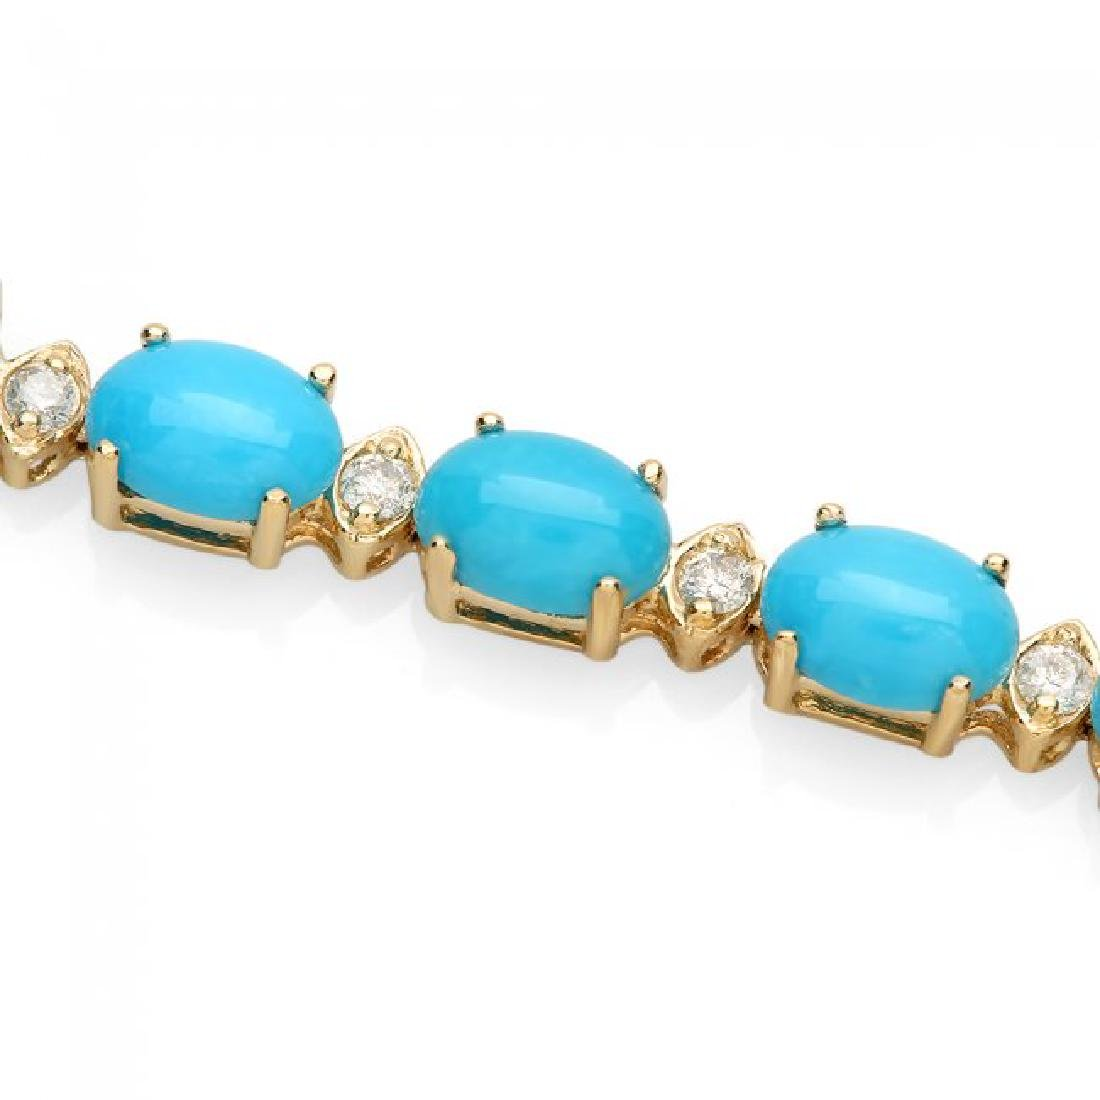 14k 12.00ct Turquoise 0.70ct Diamond Bracelet